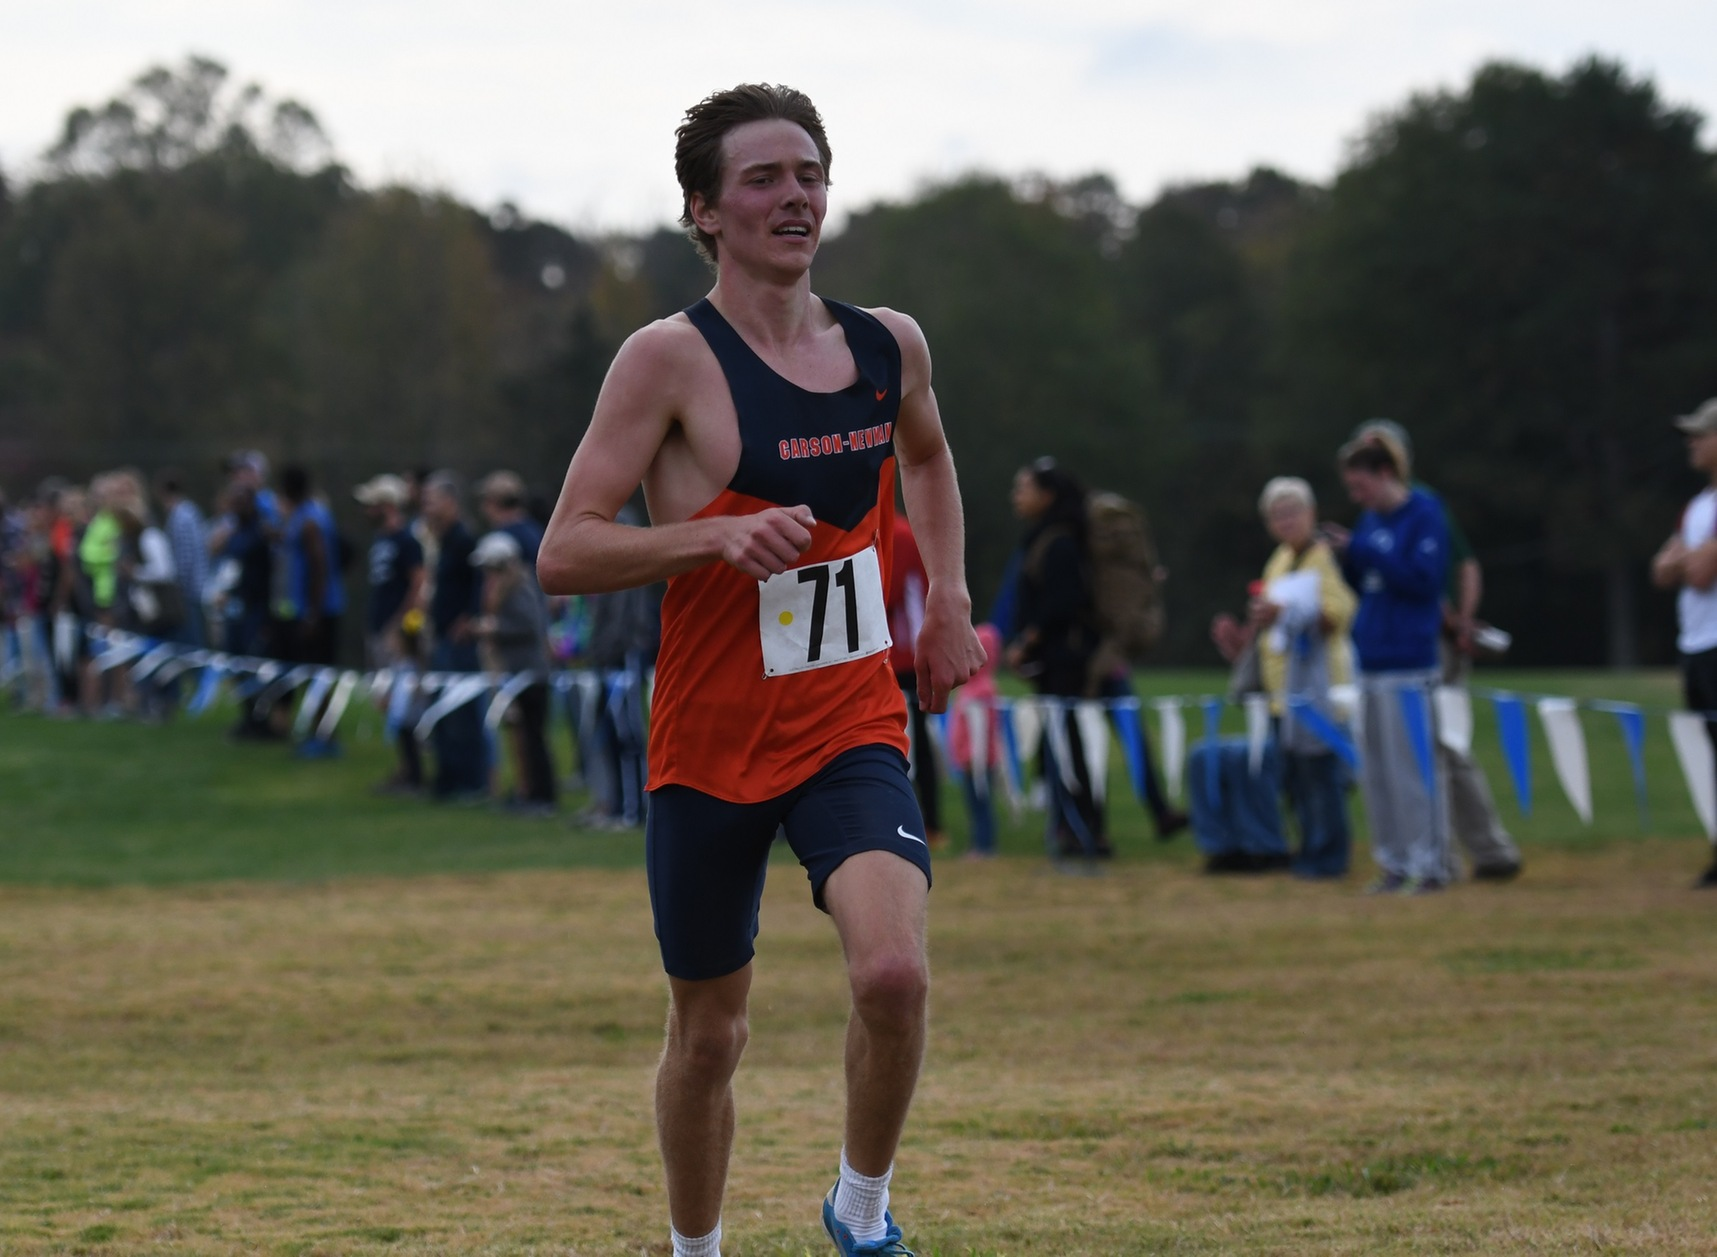 Gracious Greer Gliding into Cross Country Championships